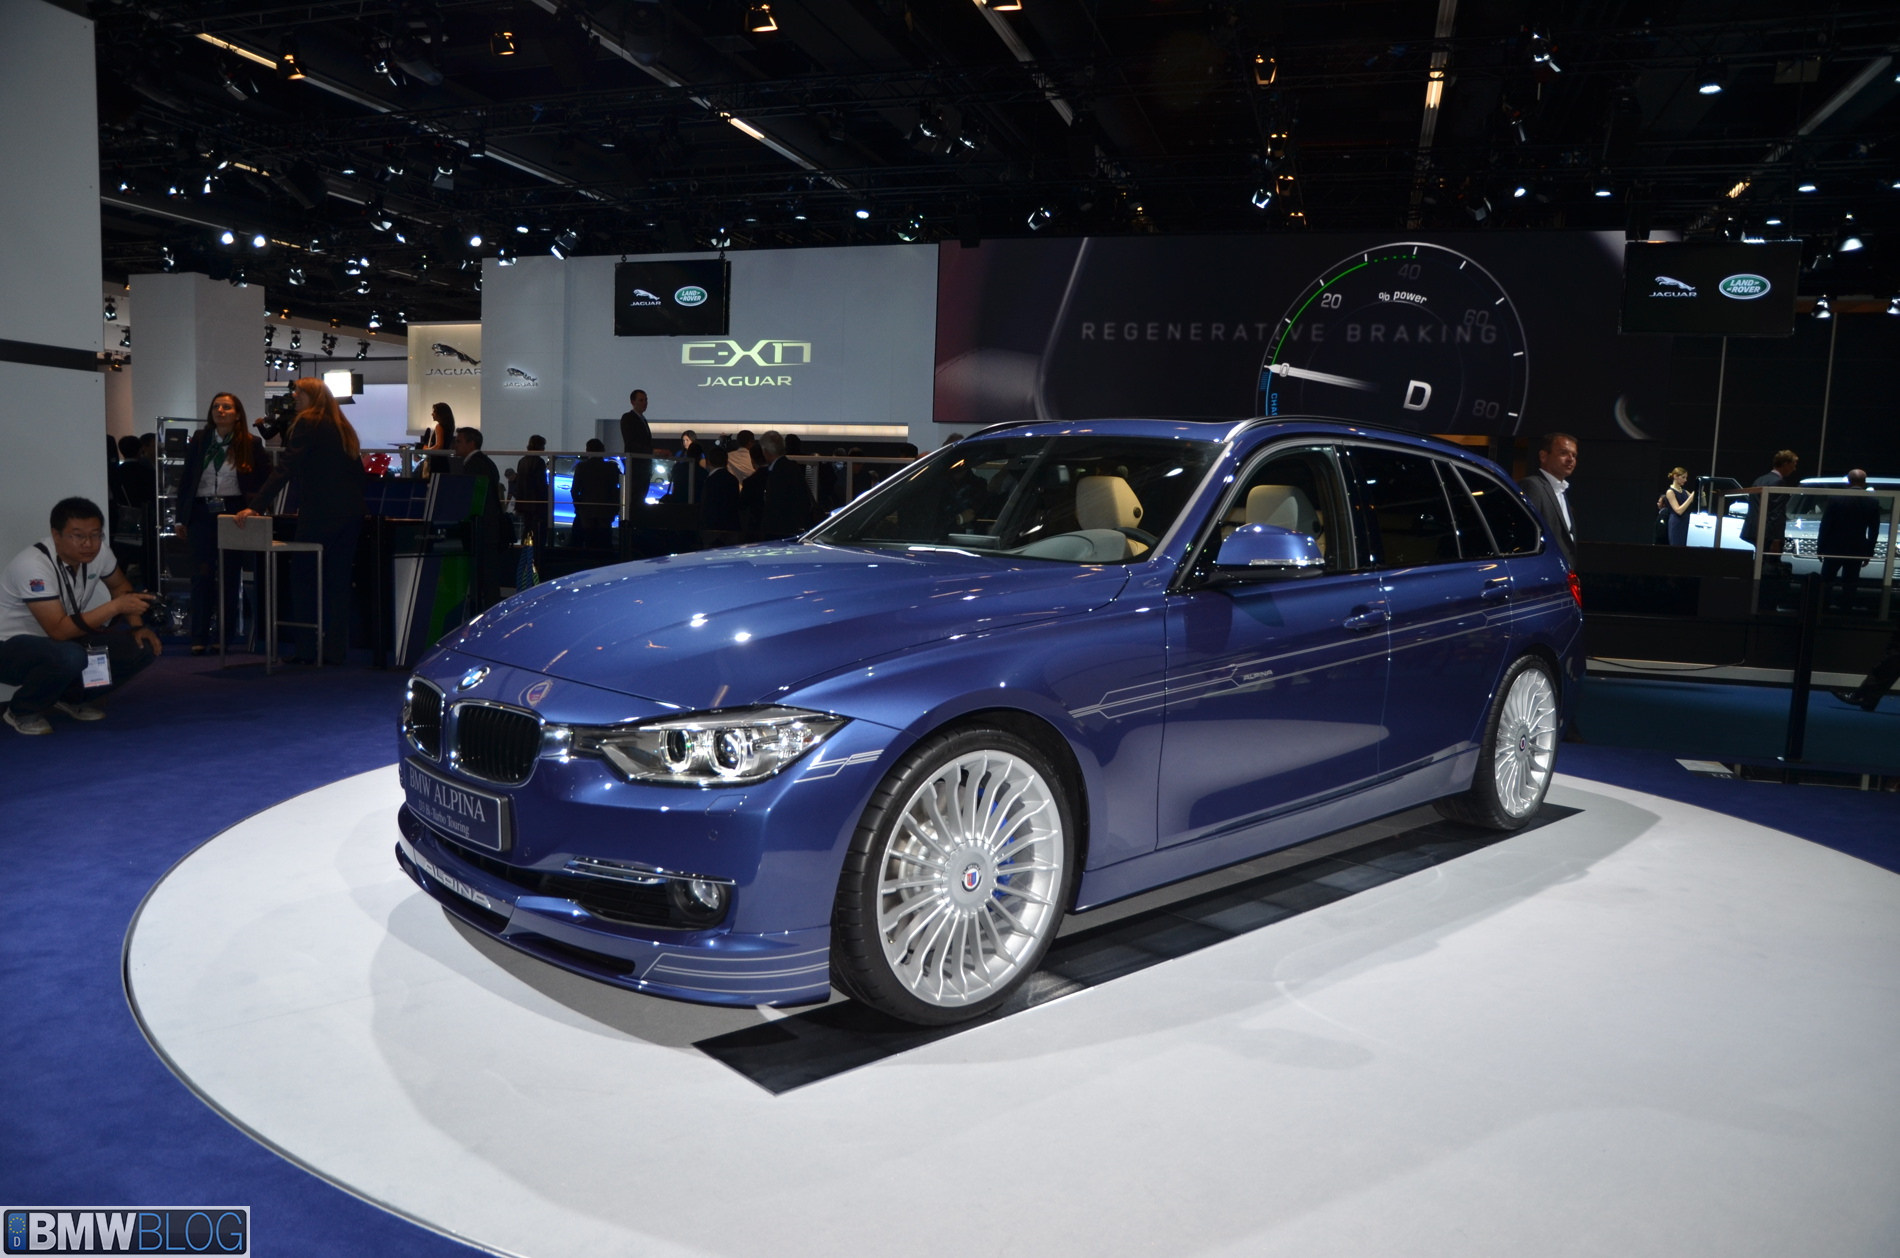 2014 alpina d3 biturbo images 01